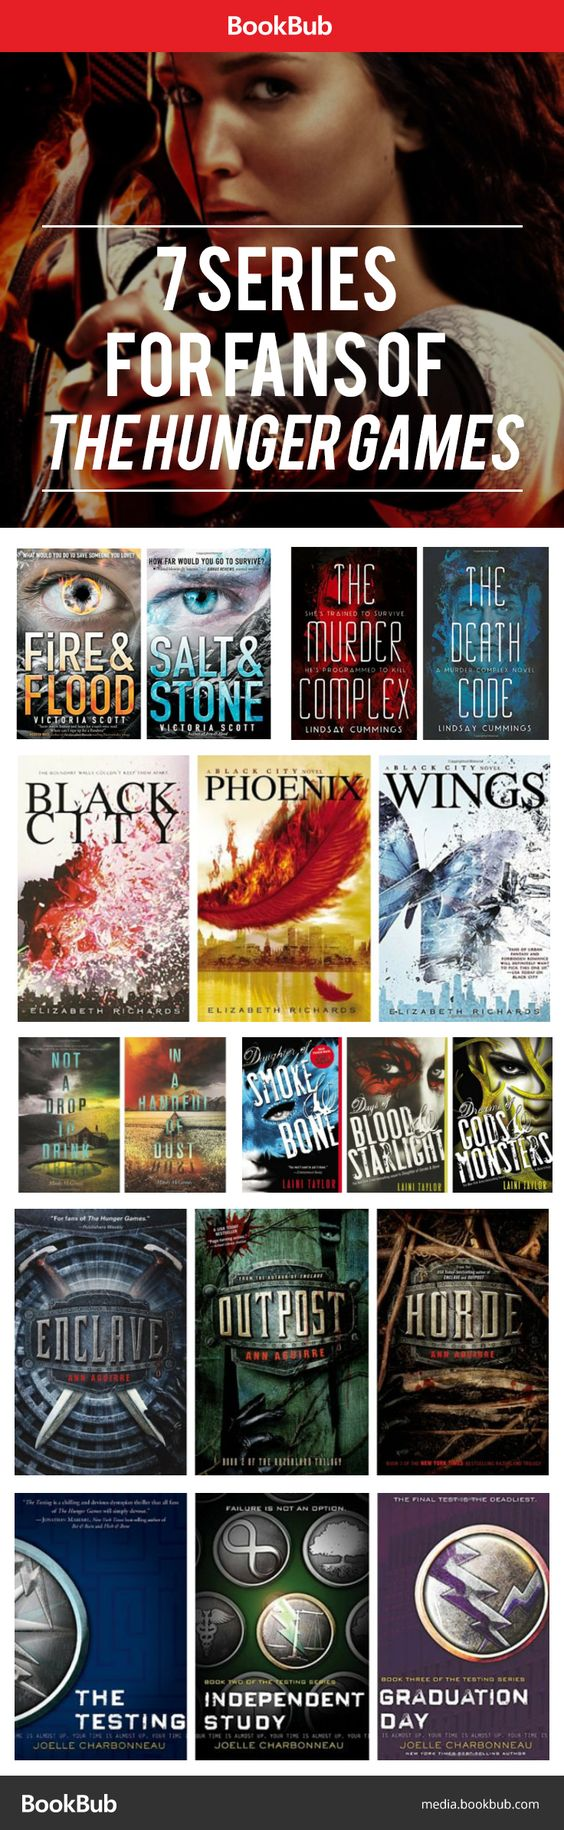 If you can't get enough of Katniss, Peeta, and dystopian worlds, here are 7 book series for fans of The Hunger Games.